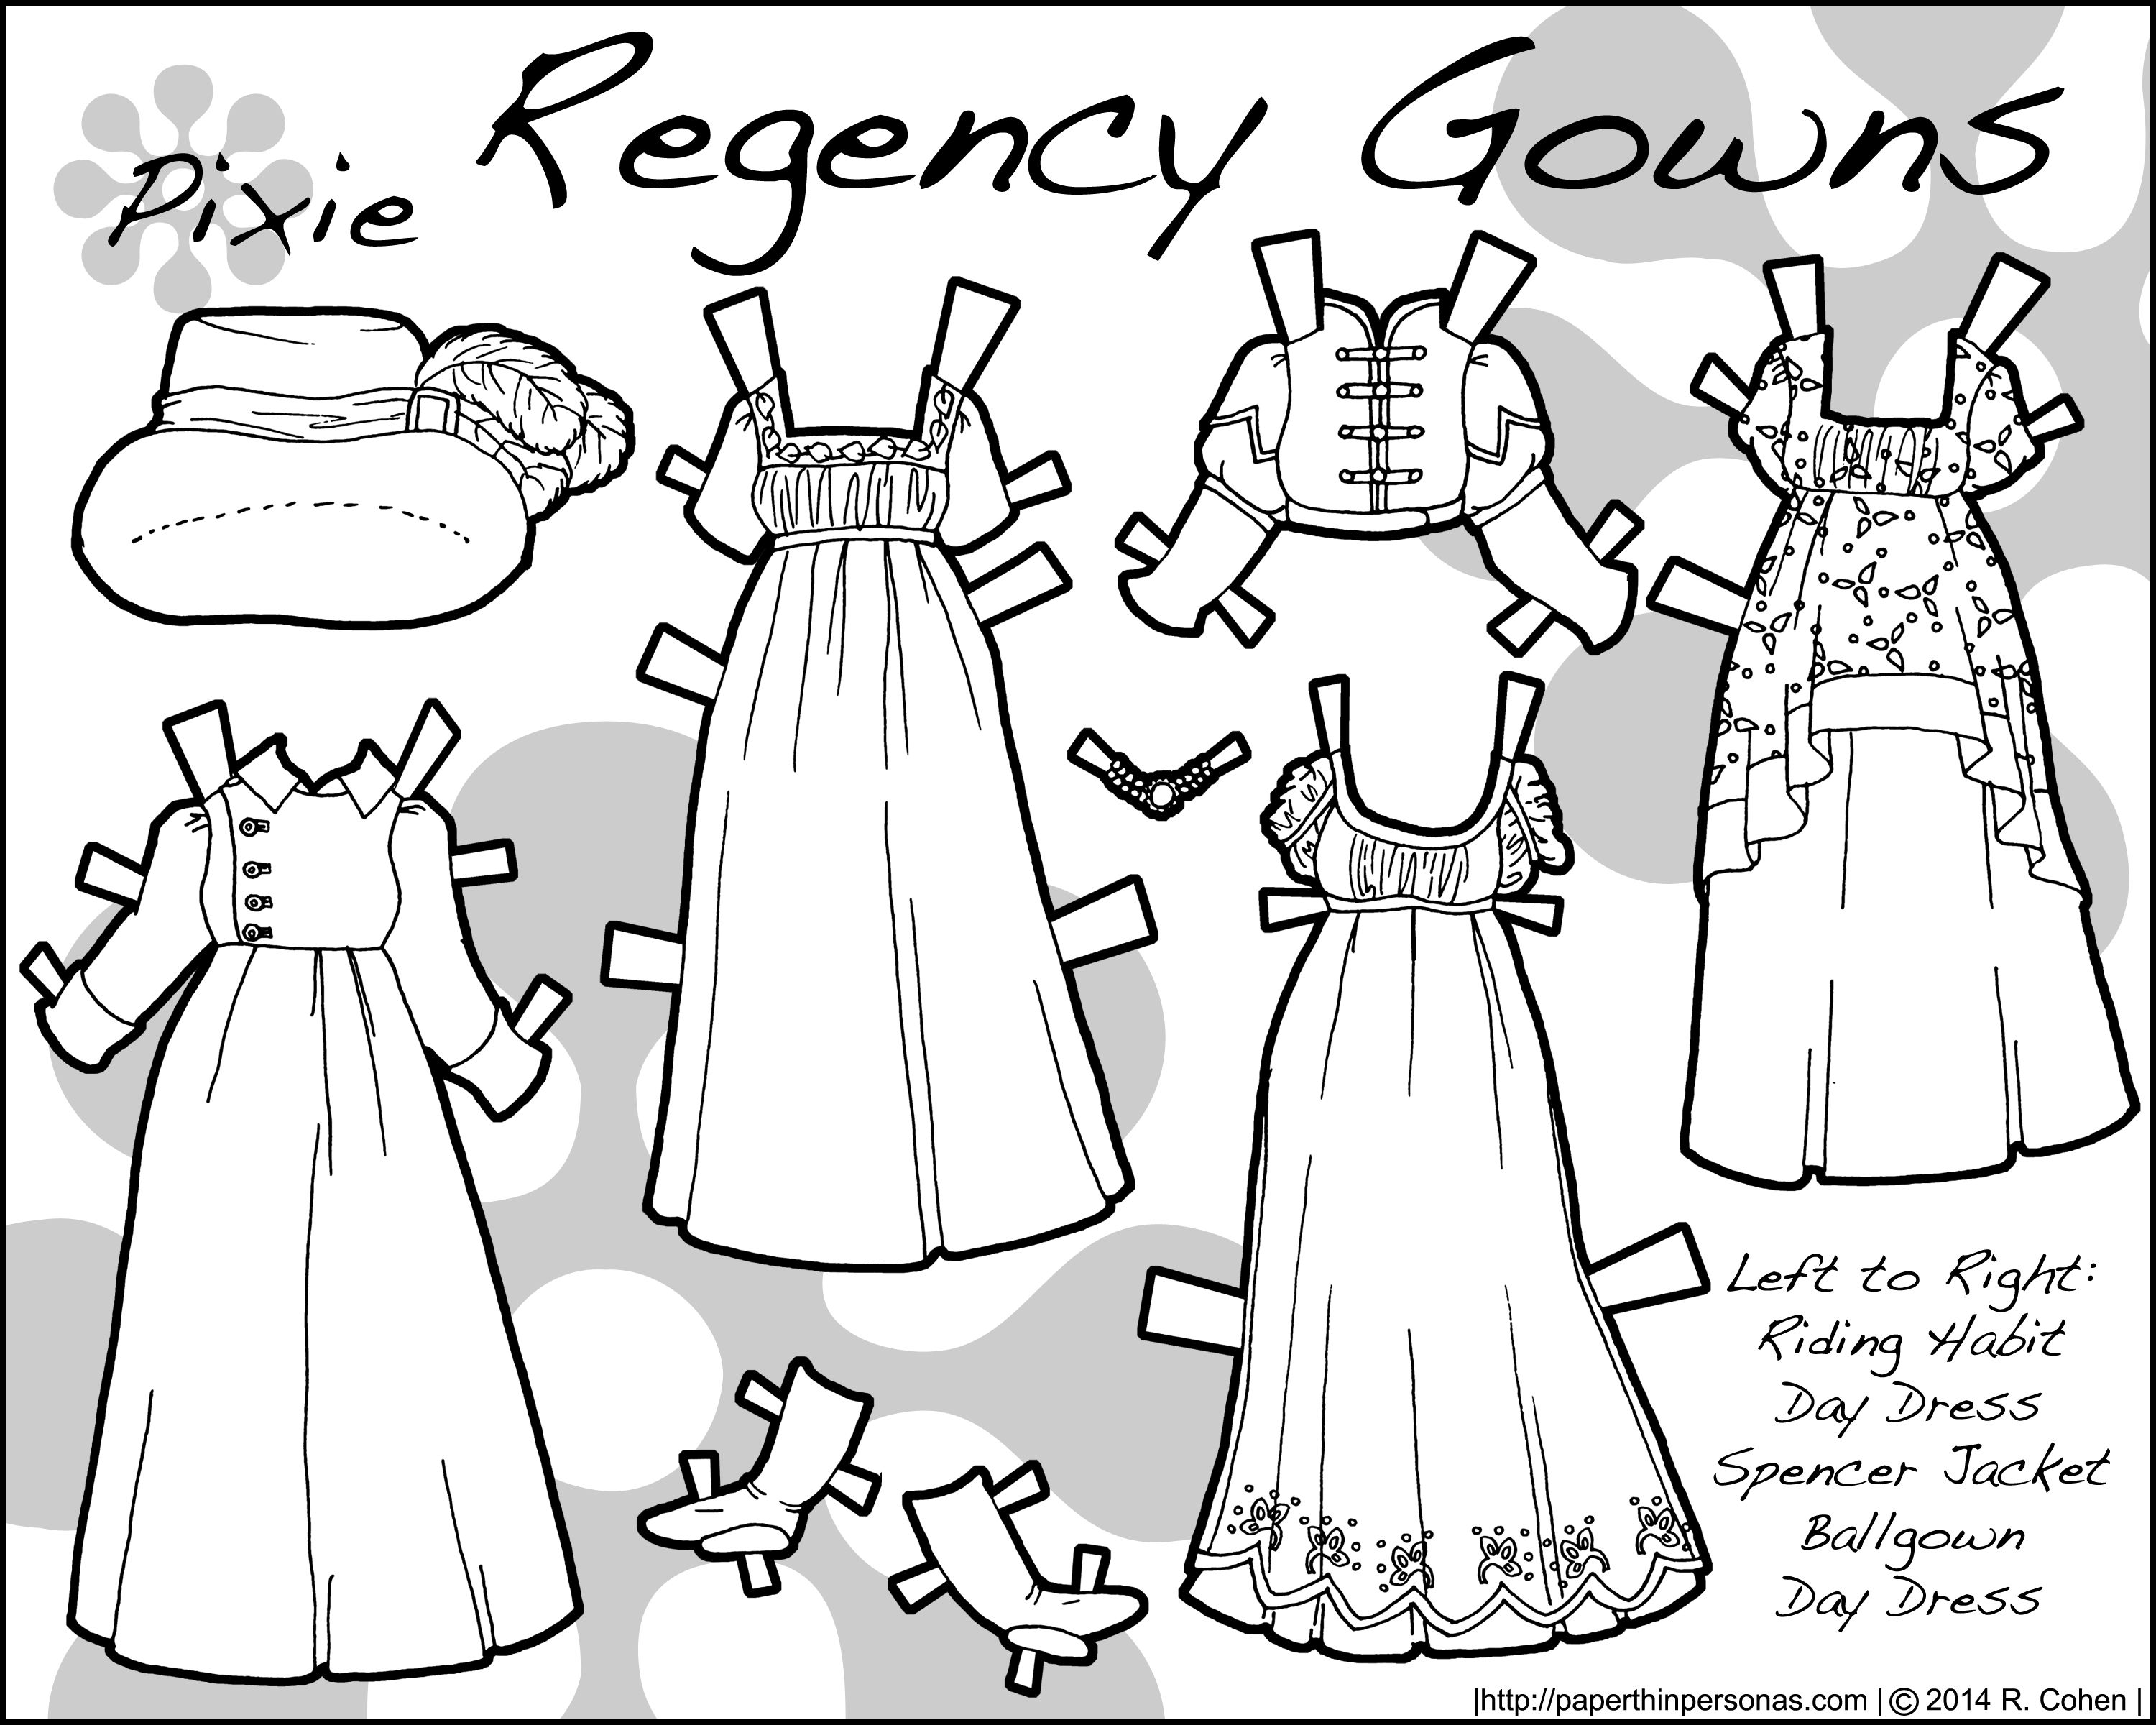 Regency fashions for a paper doll to color- free to print from paperthinpersonas.com.